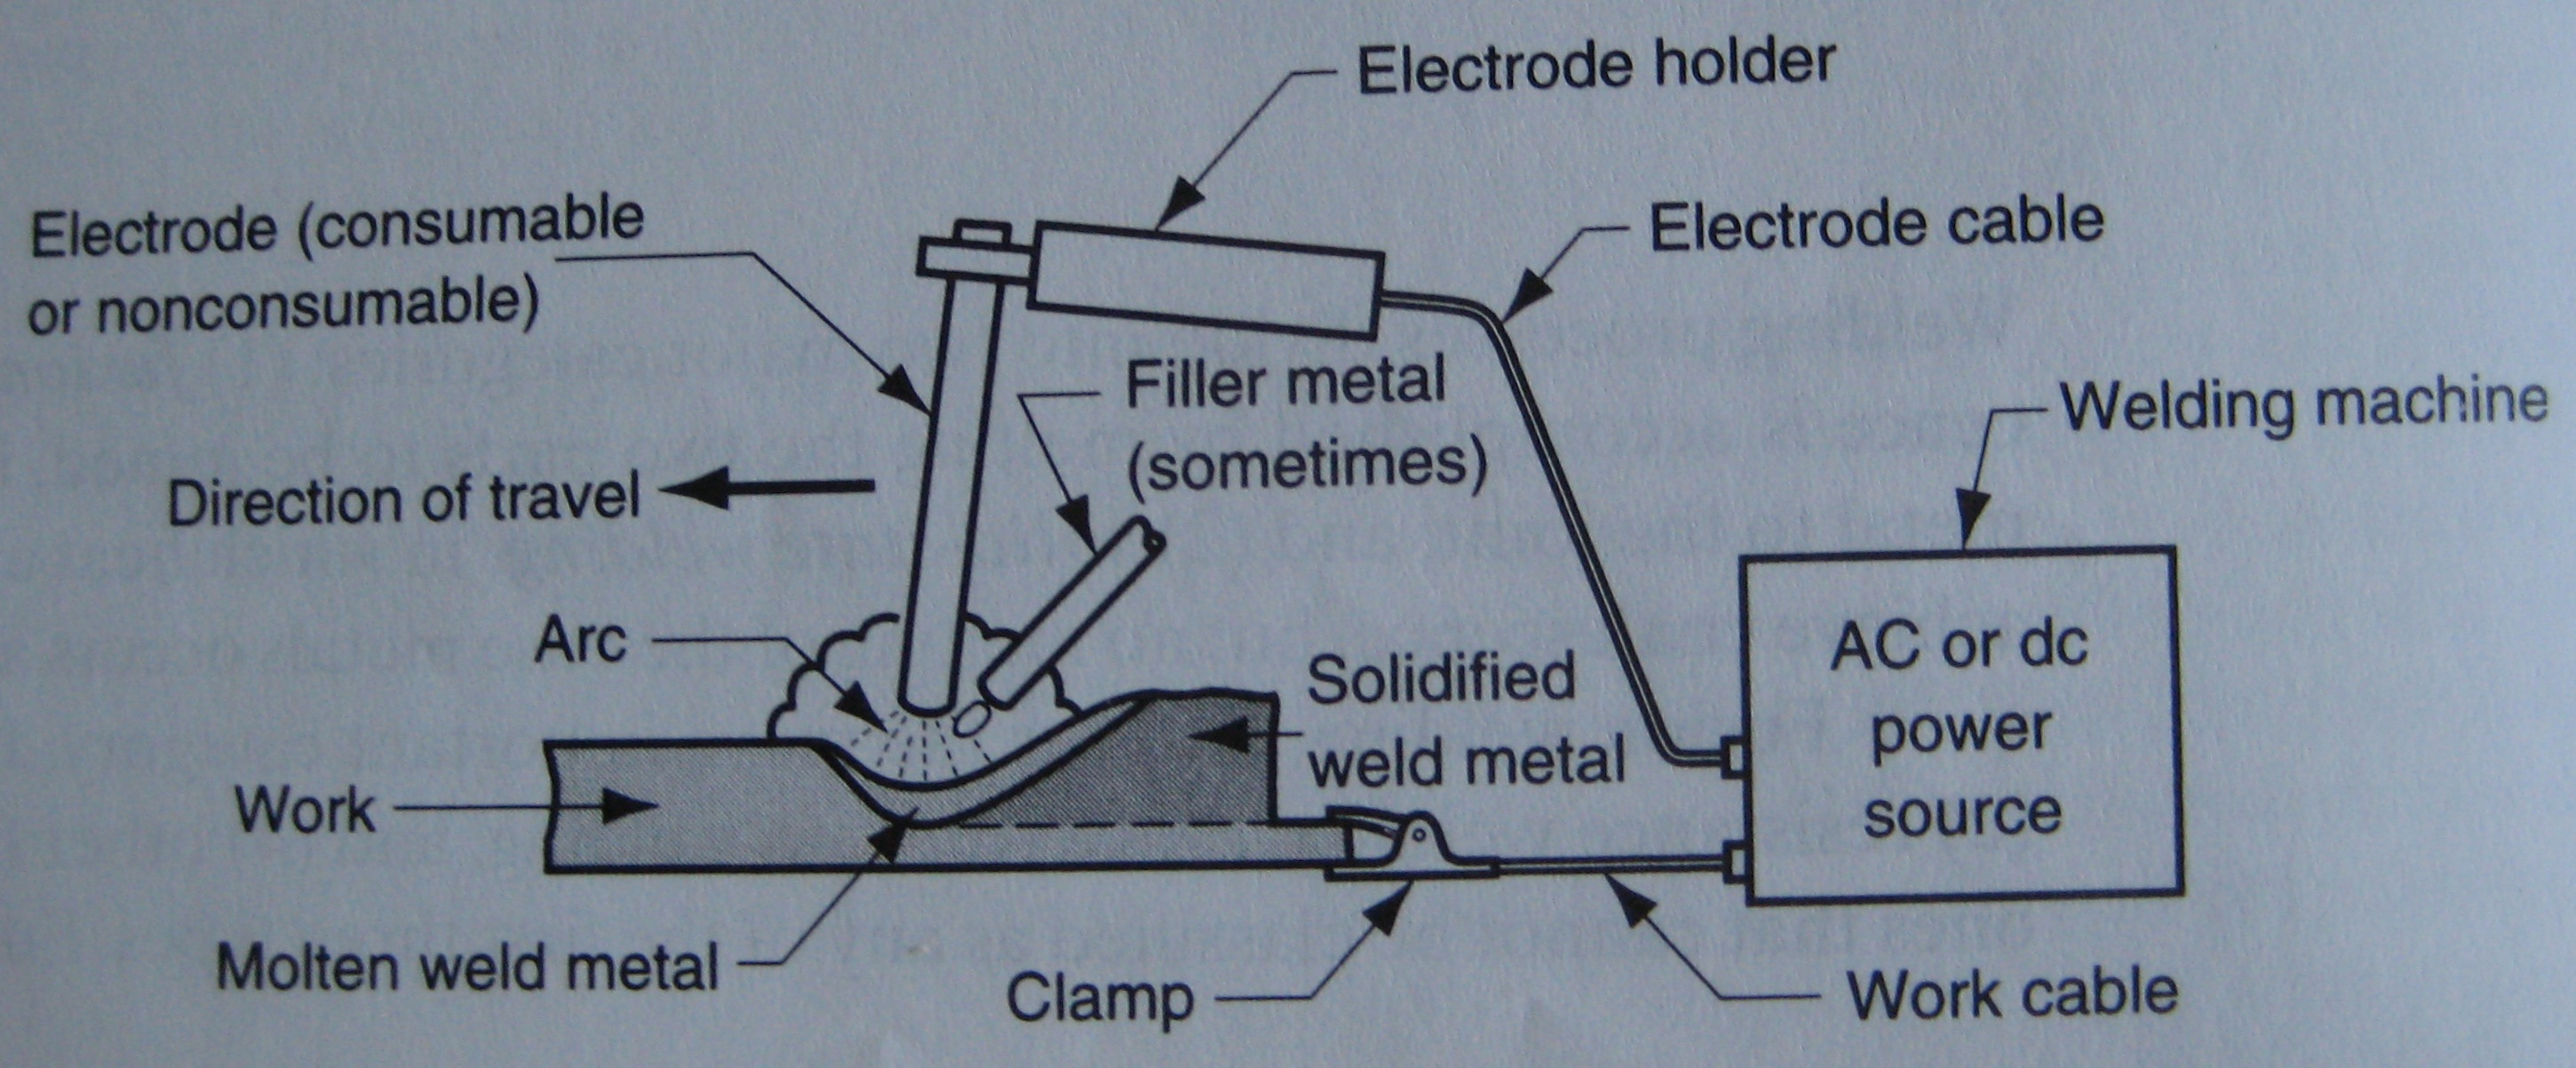 Arc Welding Process Diagram Wiring Library Dc Machine Most